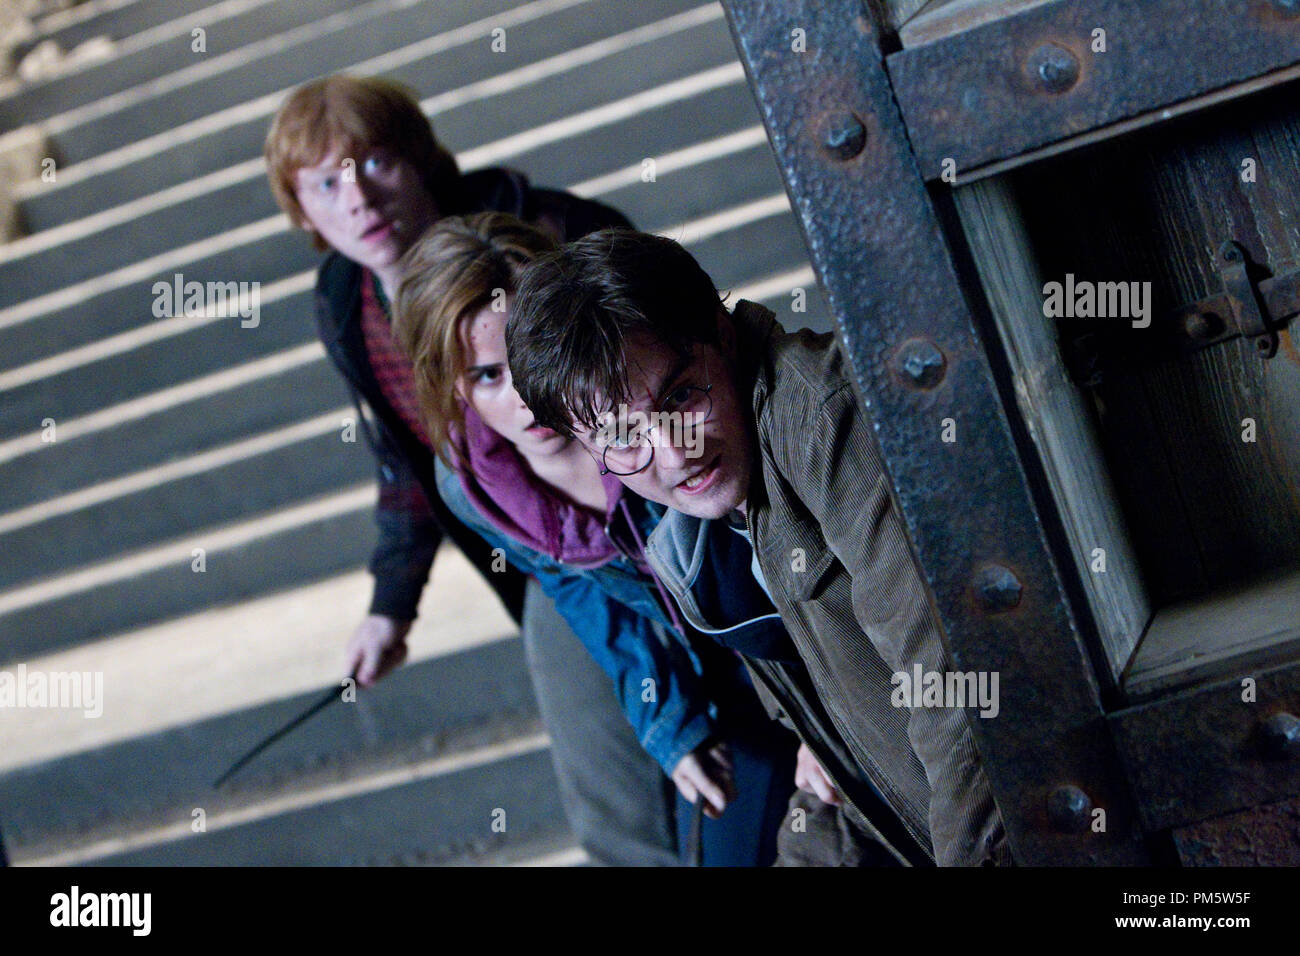 """(L-r) RUPERT GRINT as Ron Weasley, EMMA WATSON as Hermione Granger and DANIEL RADCLIFFE as Harry Potter in Warner Bros. Pictures' fantasy adventure """"HARRY POTTER AND THE DEATHLY HALLOWS – PART 2,"""" a Warner Bros. Pictures release. - Stock Image"""